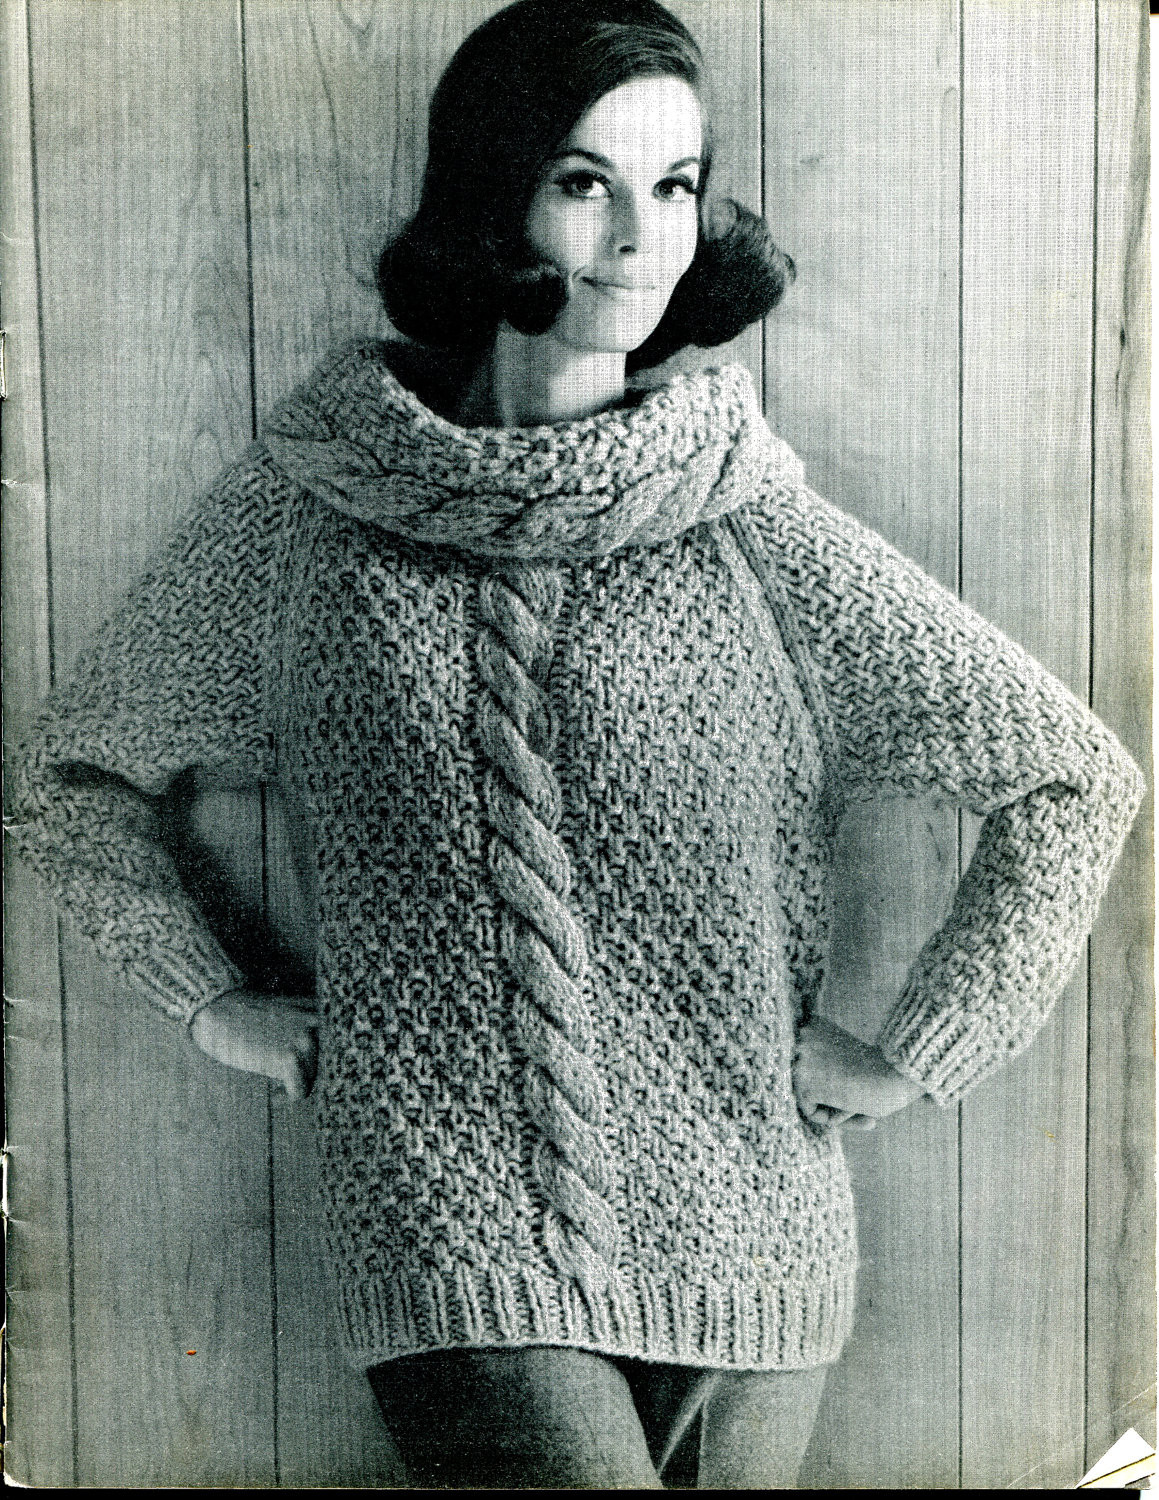 Chunky Knit Cardigan Pattern Unique Cable Knit Sweater Patterns Of Charming 40 Images Chunky Knit Cardigan Pattern